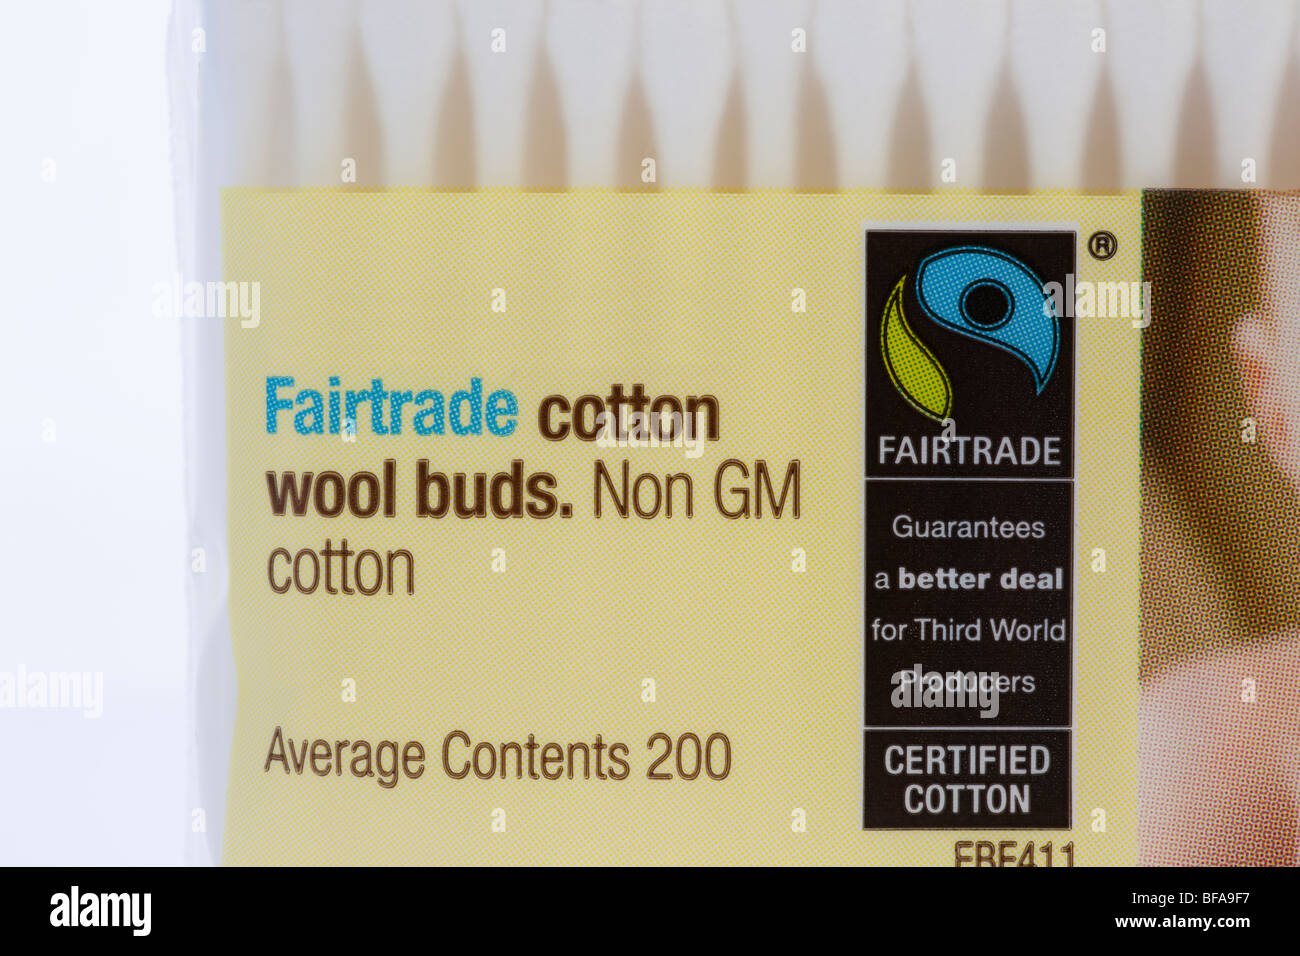 Britain UK Europe. Packet of Fairtrade cotton wool buds made from non-GM cotton with fair trade logo on the label - Stock Image